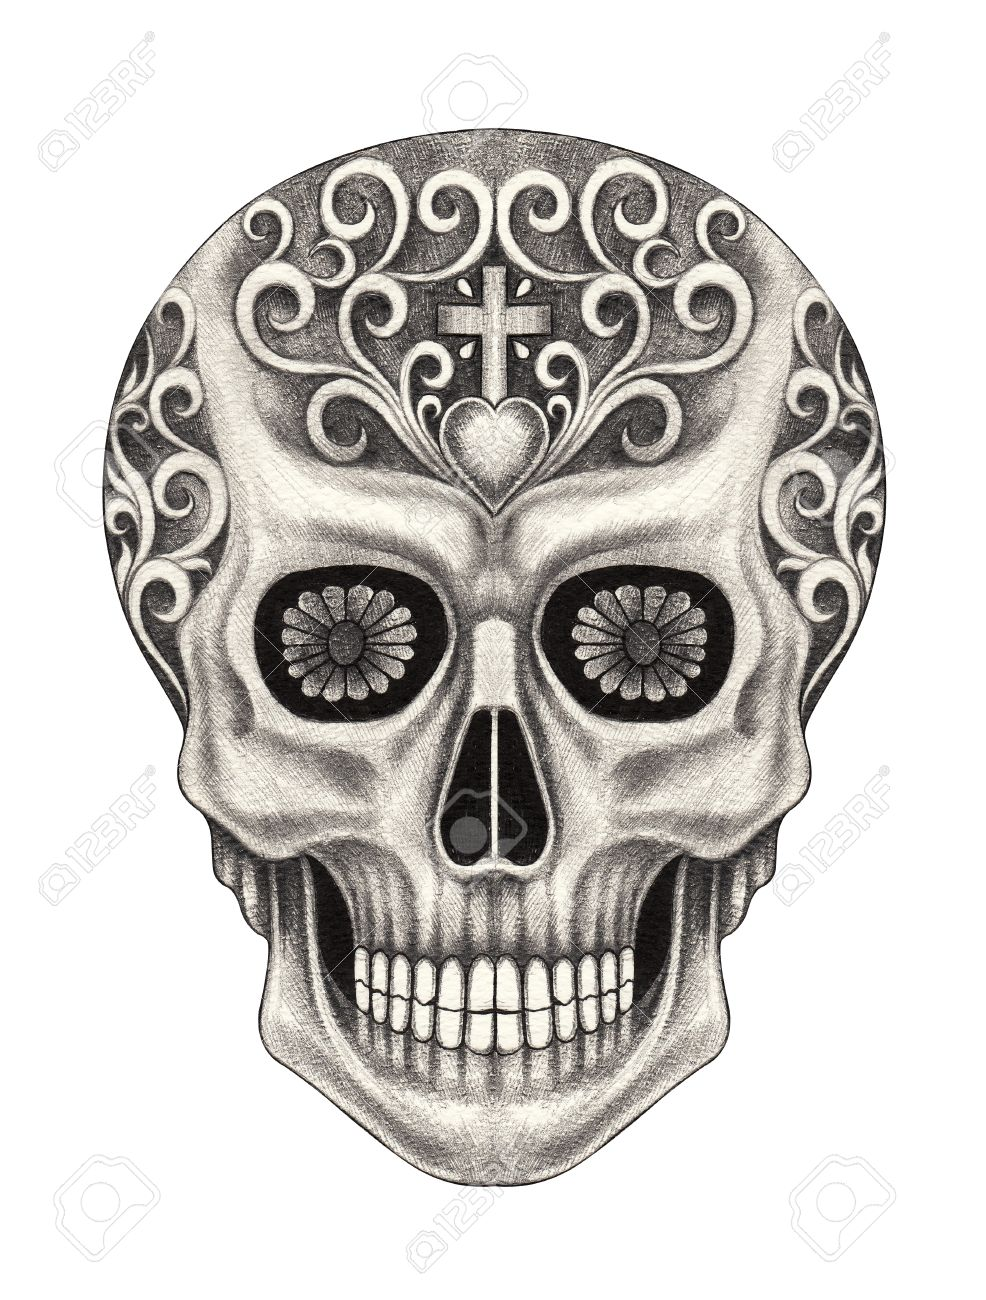 Head Skull Art Day Of The Dead Festival Hand Pencil Drawing Stock Photo Picture And Royalty Free Image Image 41434428